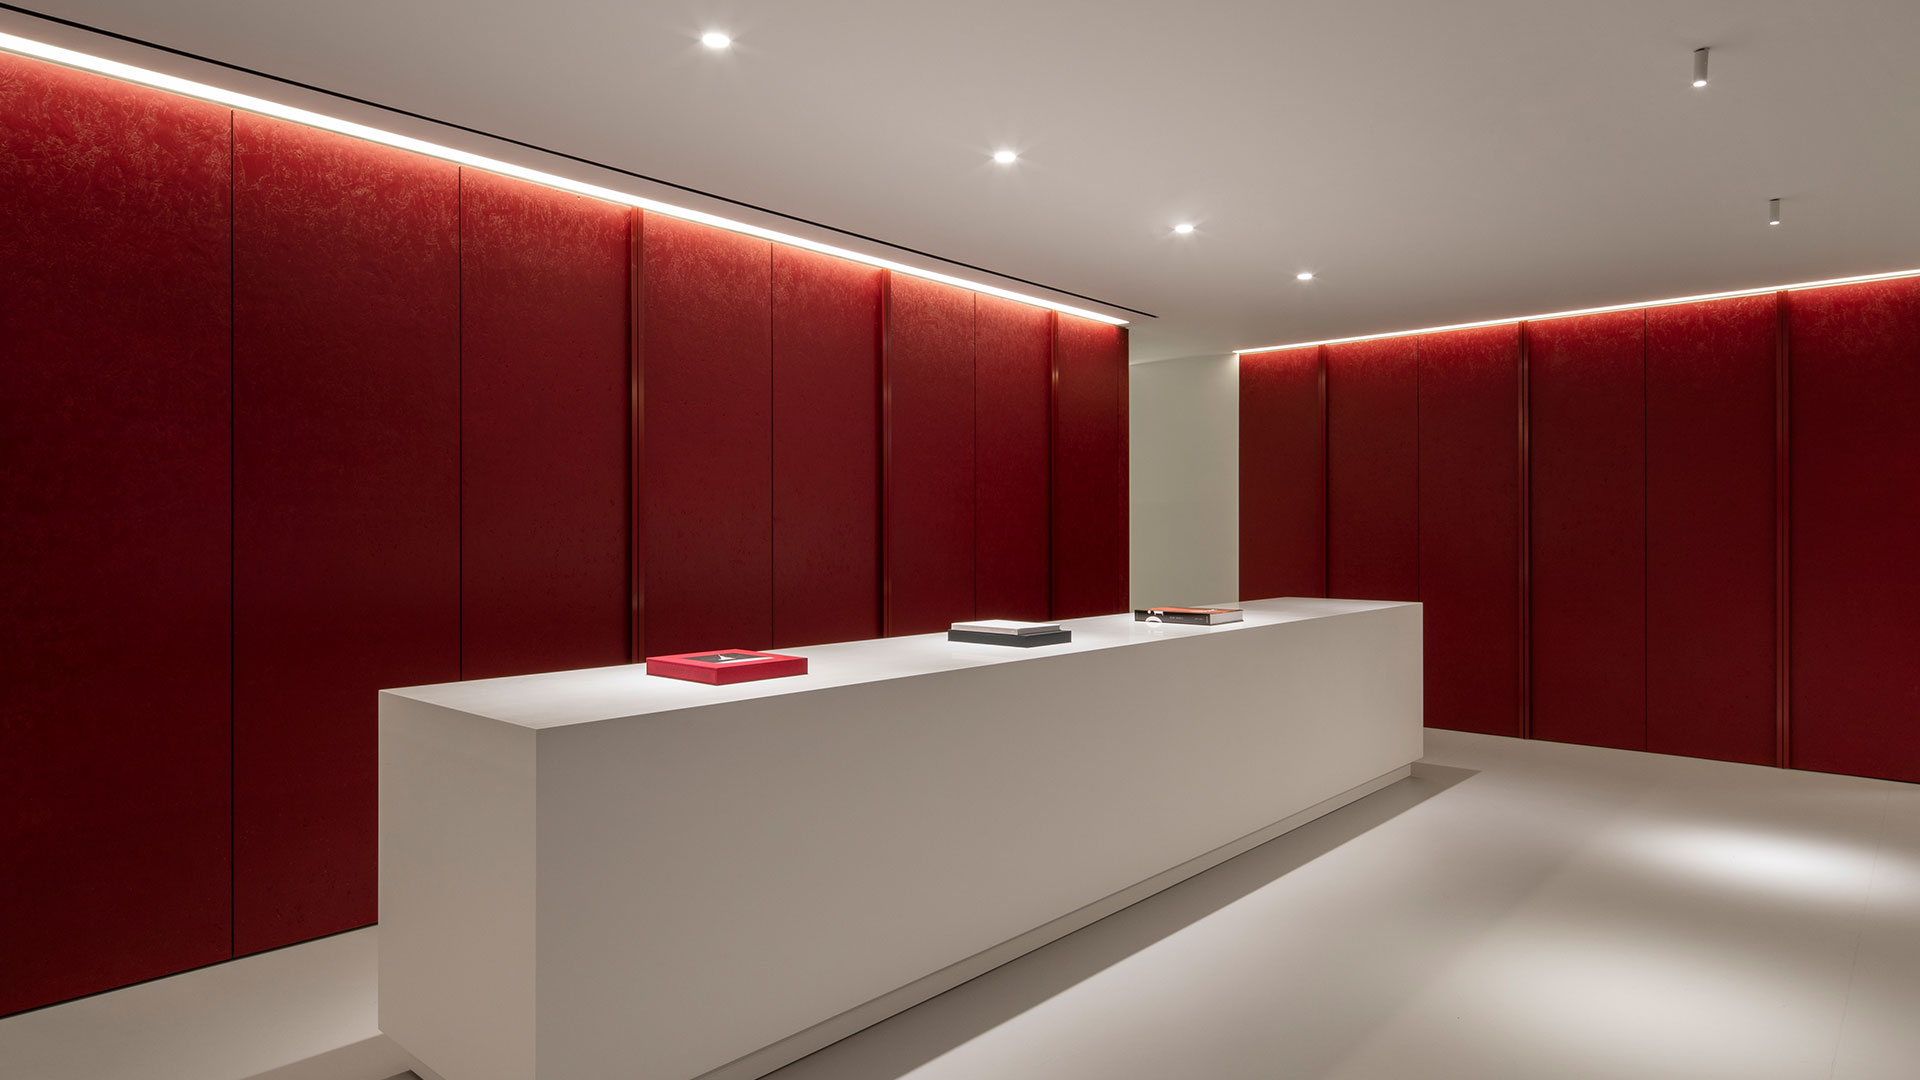 Architectural Lighting Design Sleek Contemporary Office Red Walls Sample Table Consultants Nulty